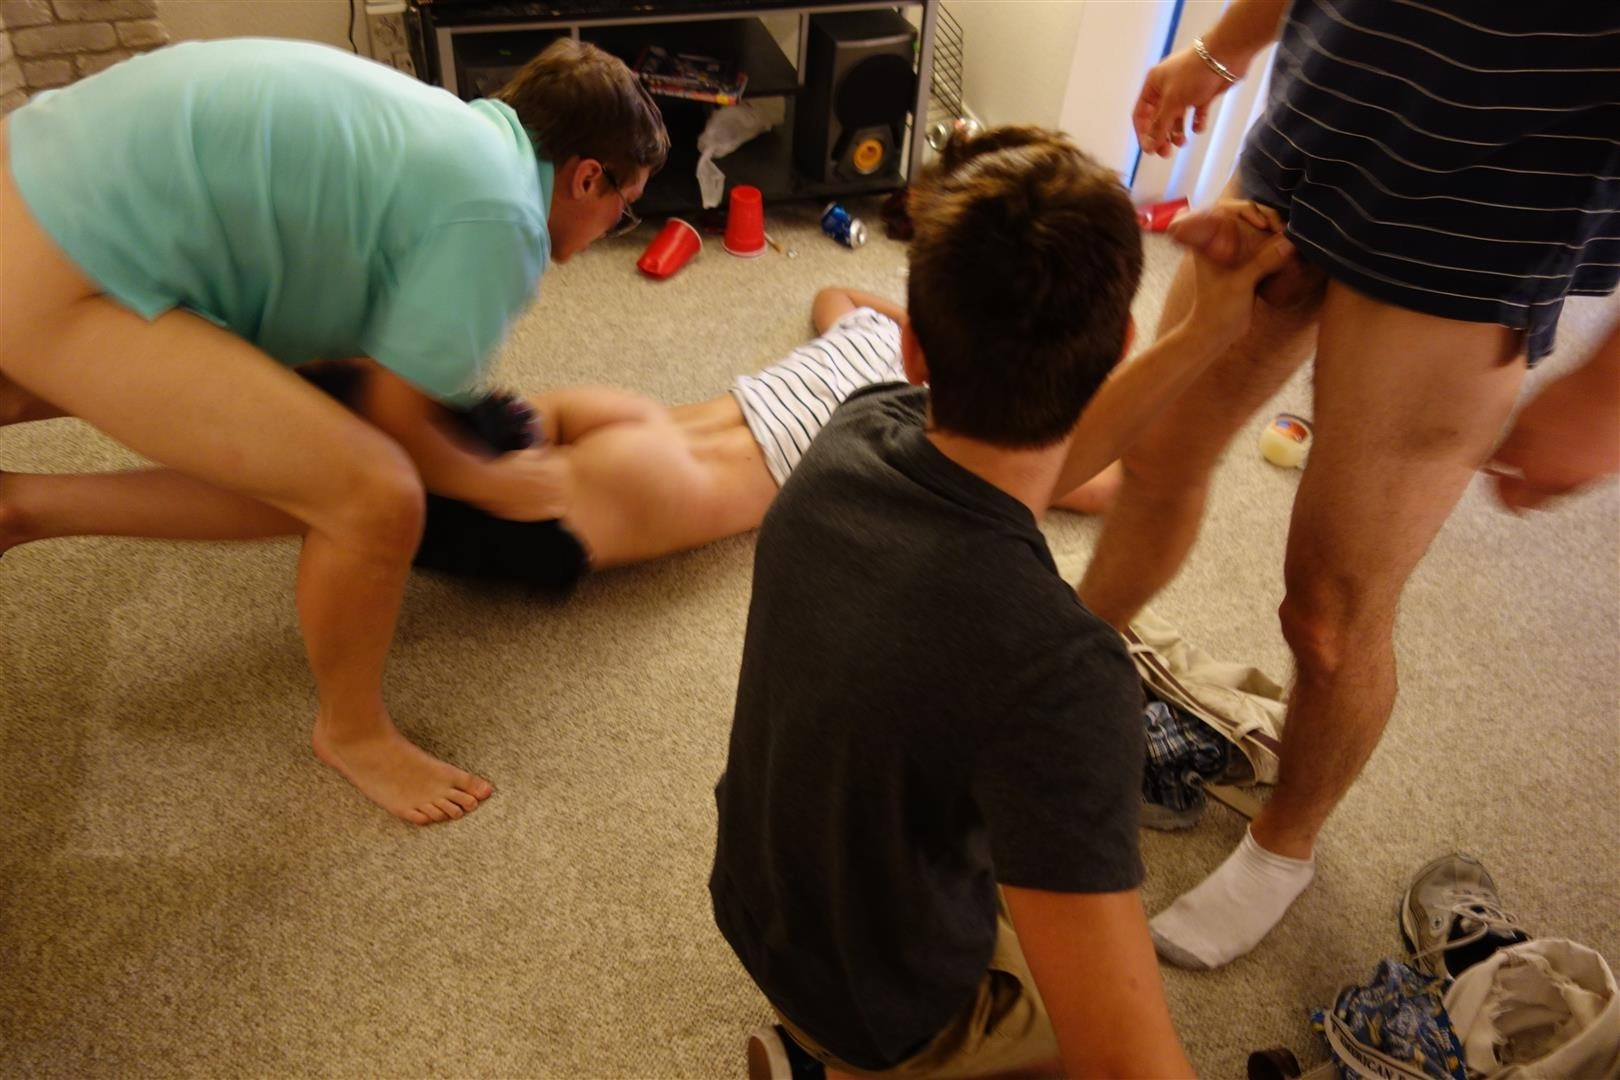 Fraternity X Drunk Frat Pledge Gets Barebacked While Passed Out Amateur Gay Porn 35 Drunk And Passed Out Frat Pledge Gets Fucked Bareback